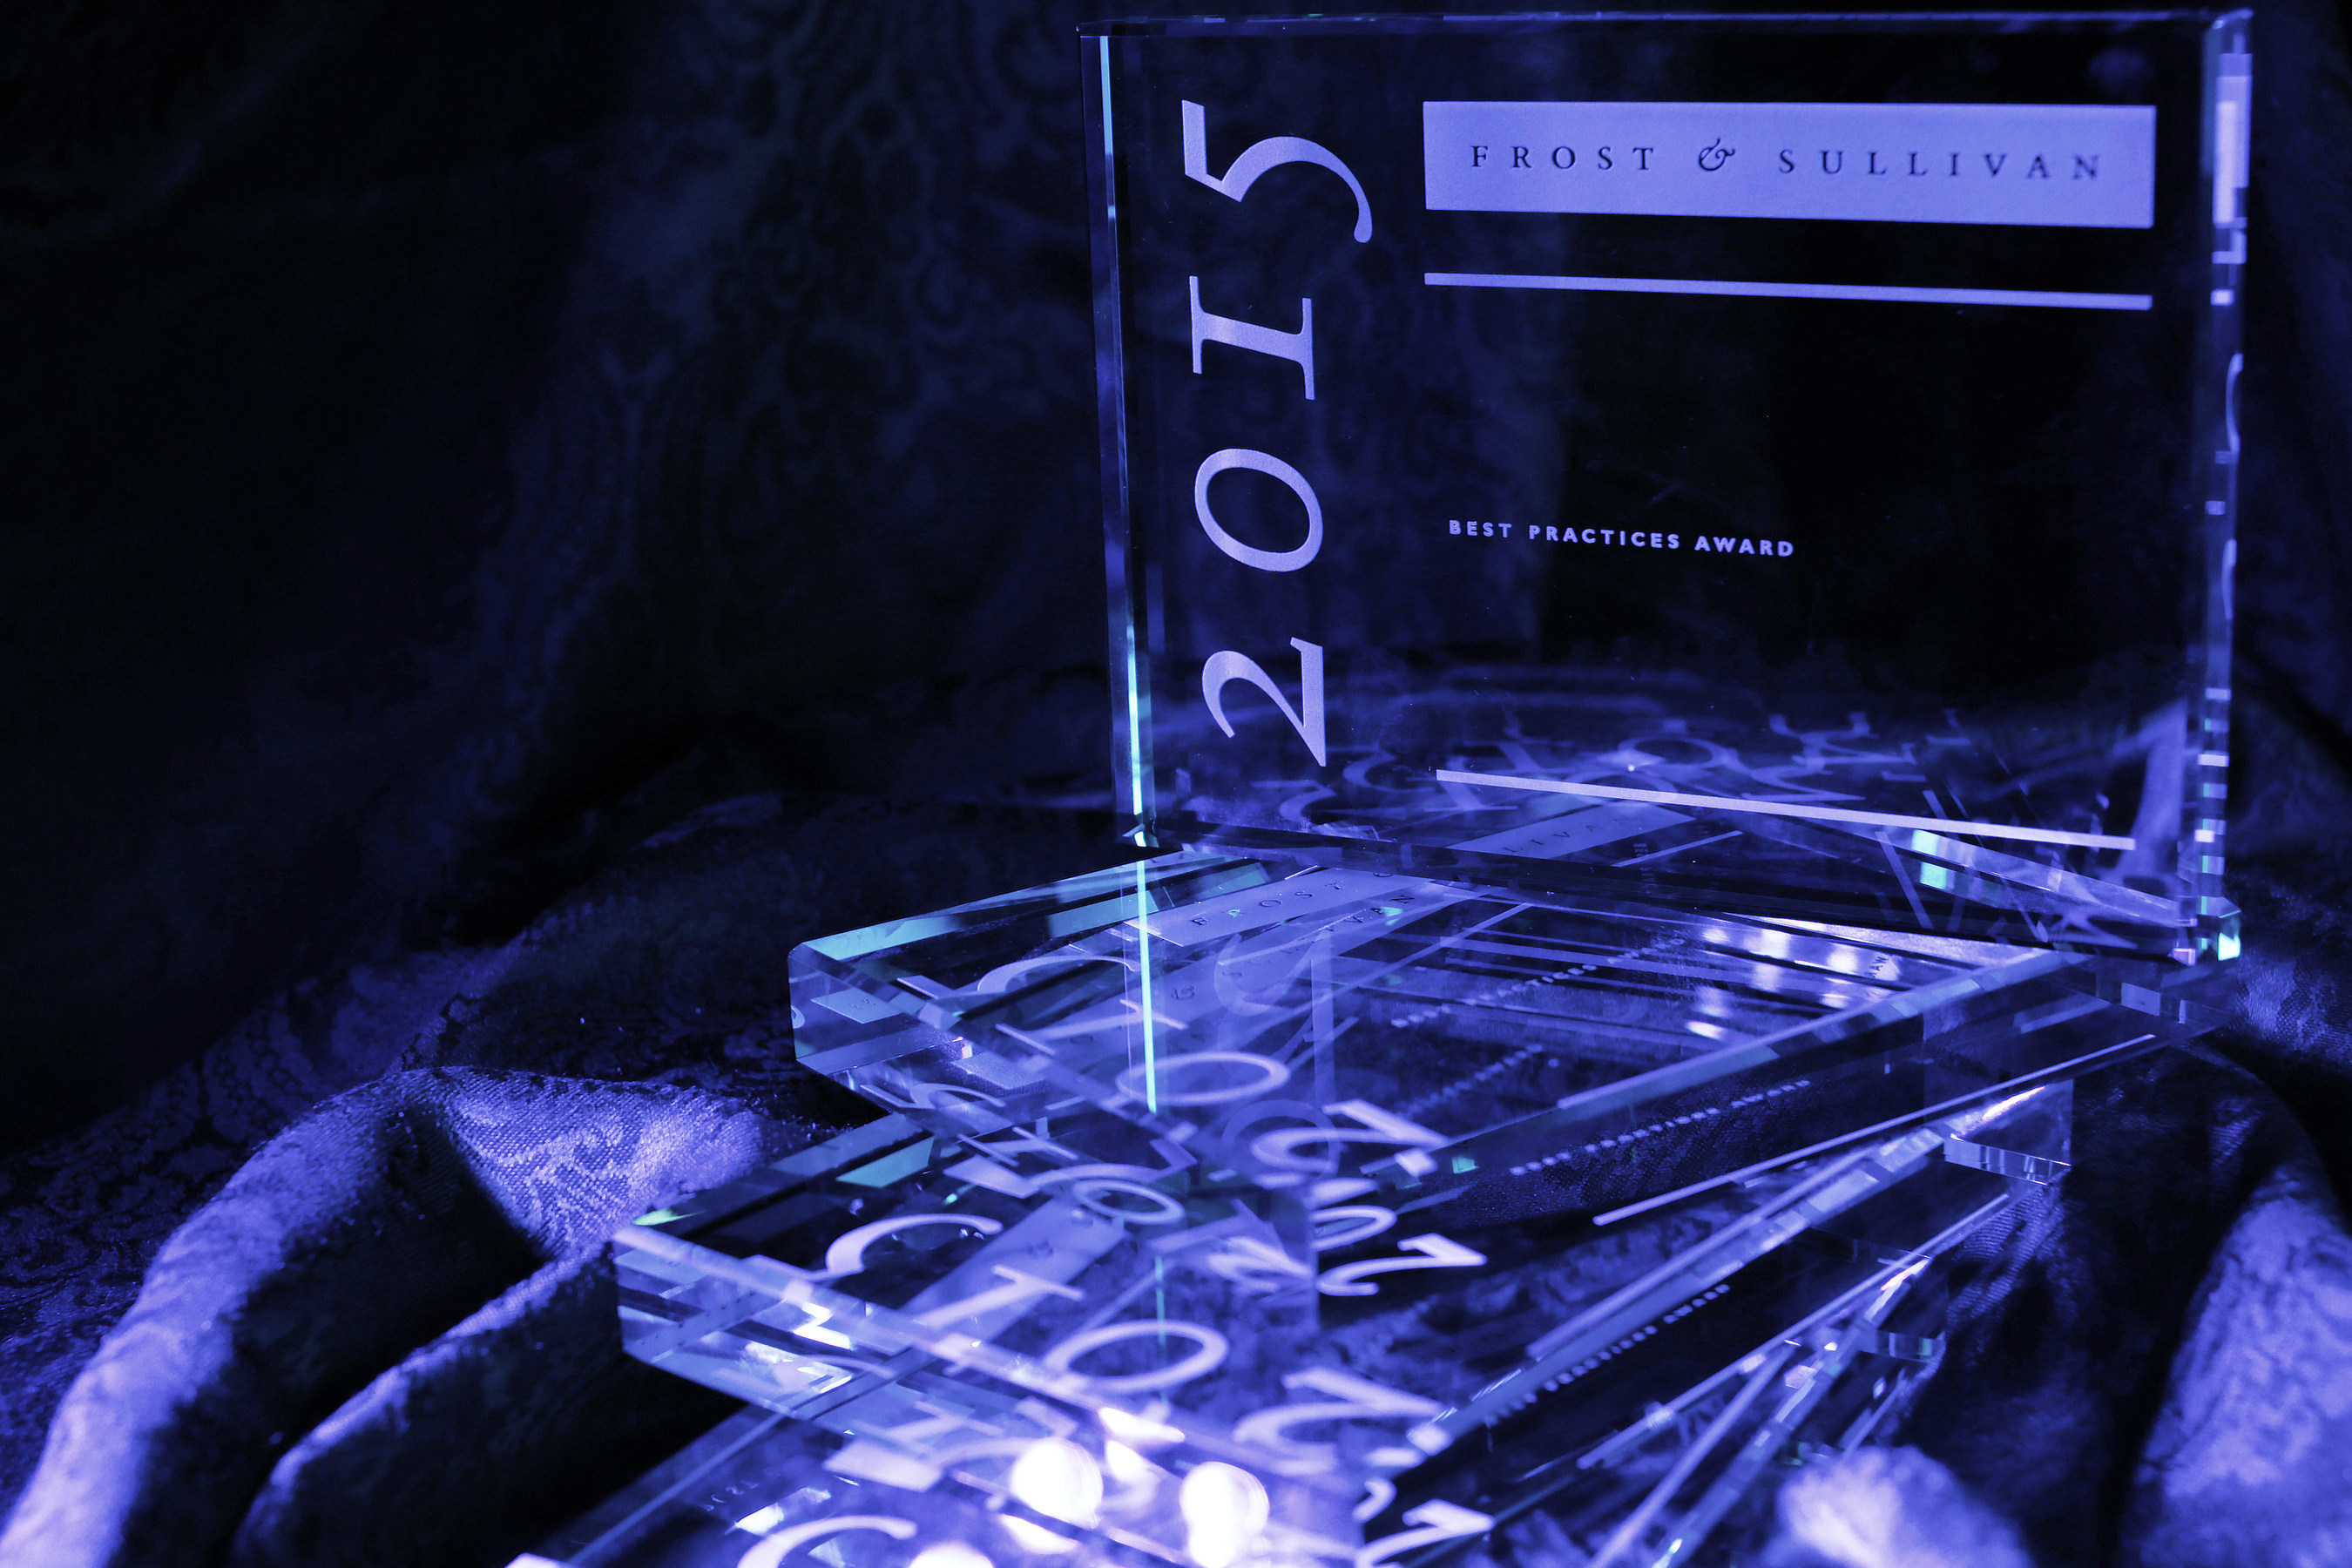 Industry Leaders Gather at Frost & Sullivan's 2015 Excellence in Best Practices Awards Banquet